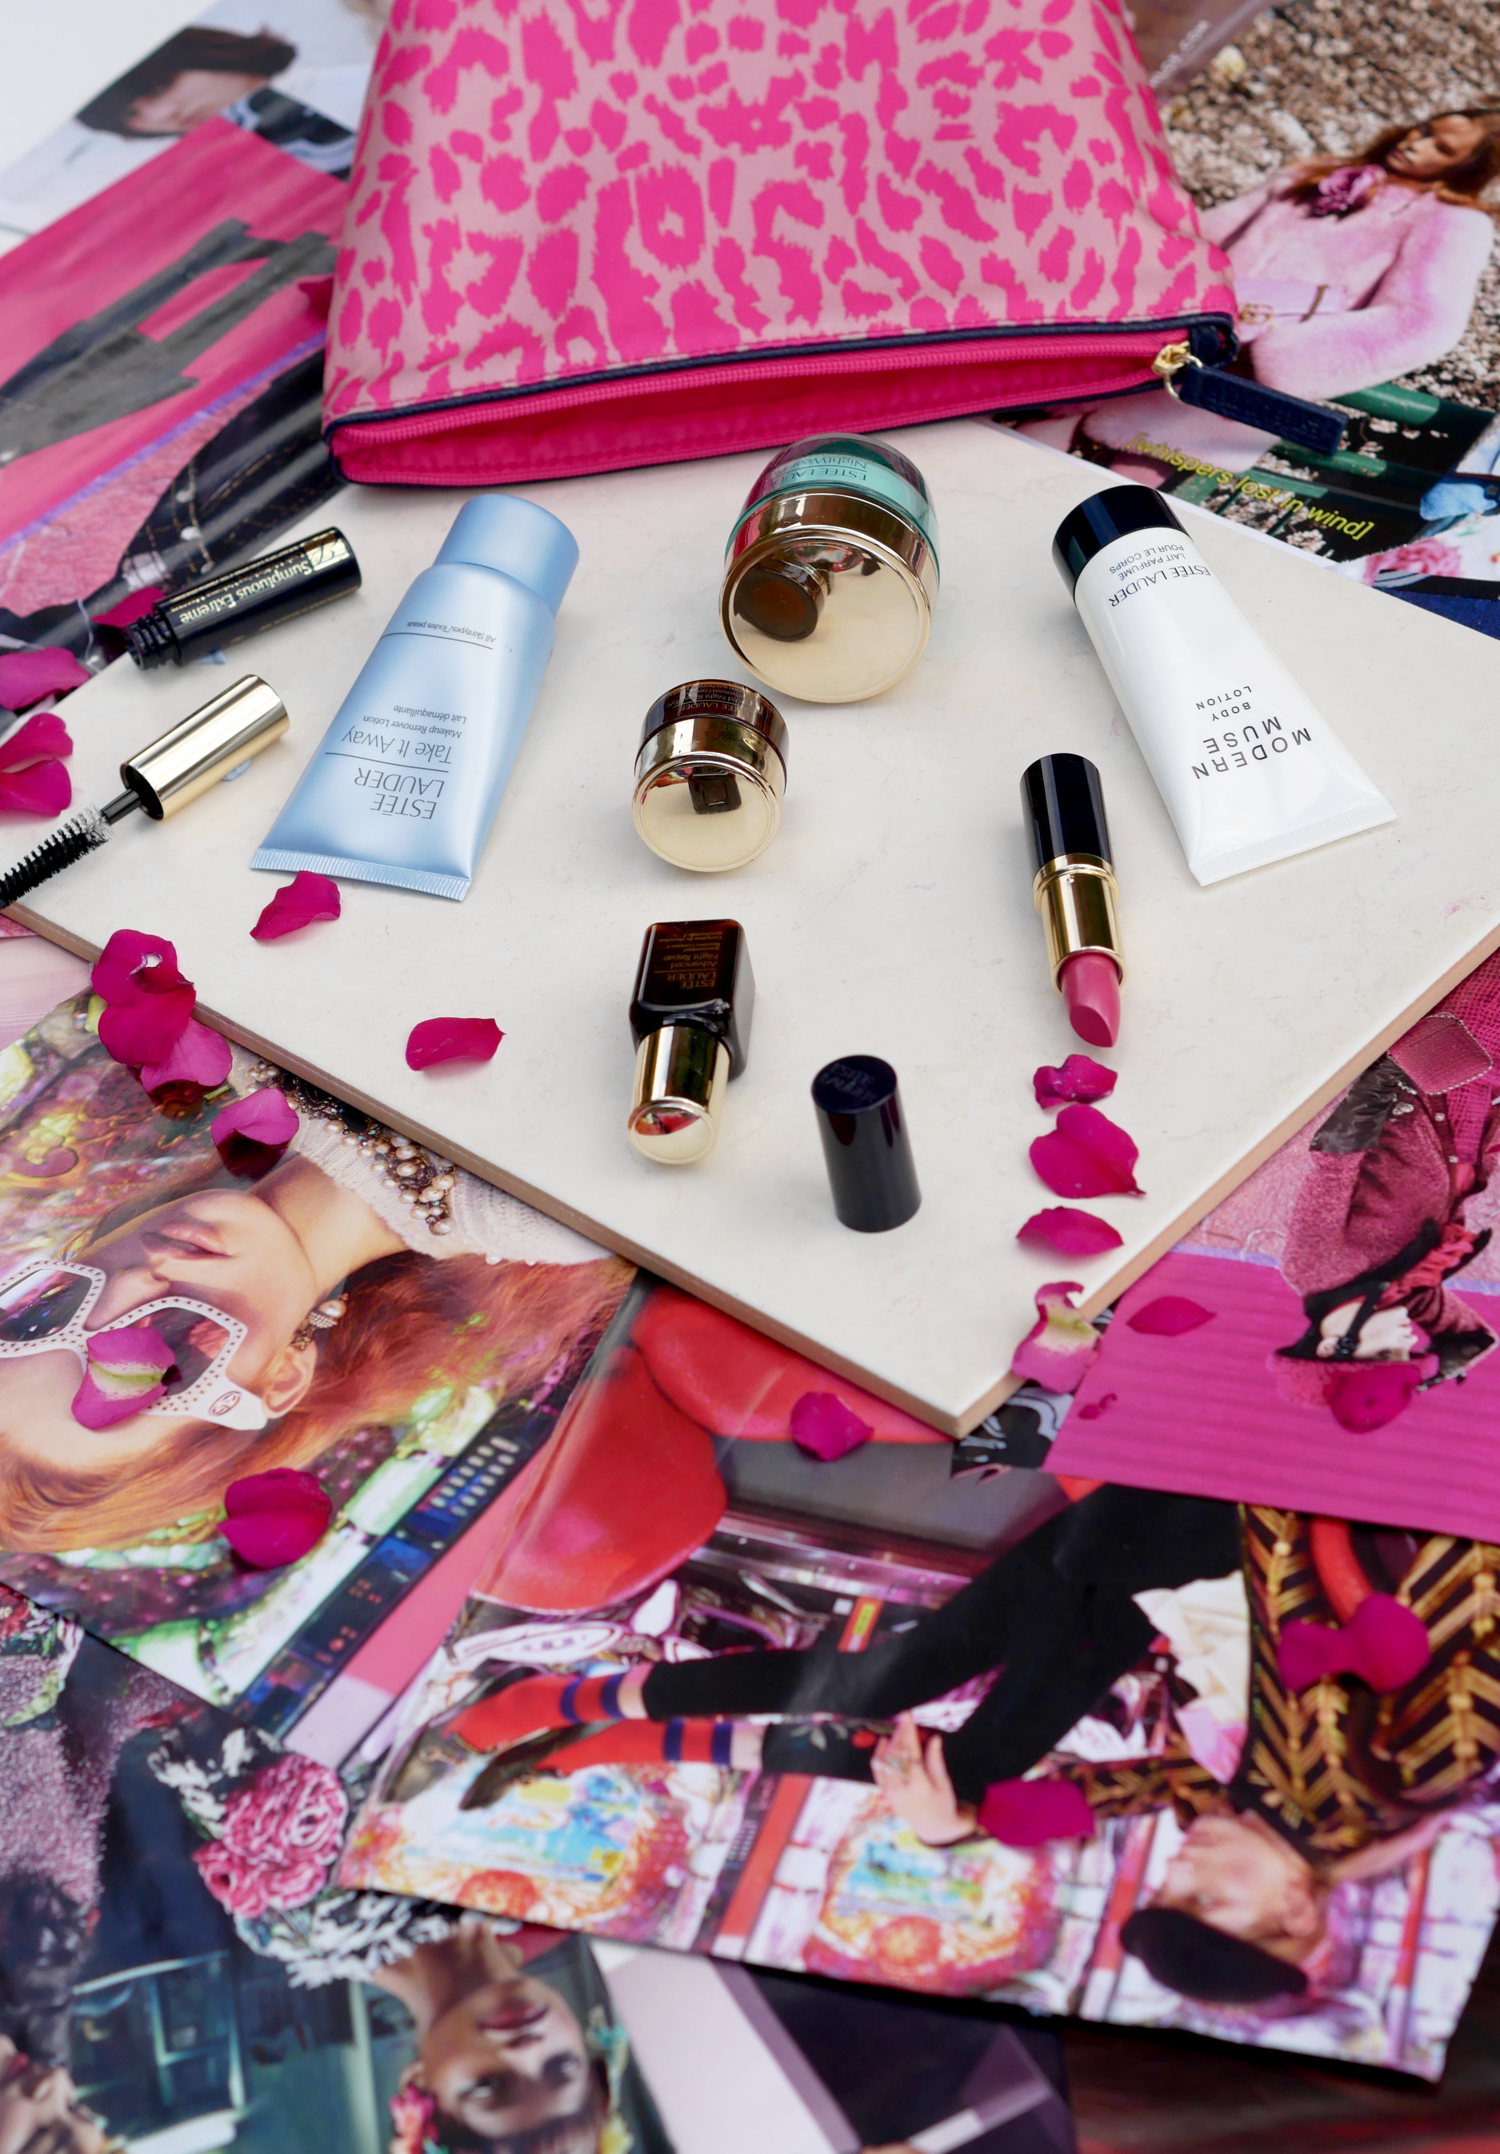 estee lauder, pink flat lay, beauty products, makeup, london fashion girl, laura blair